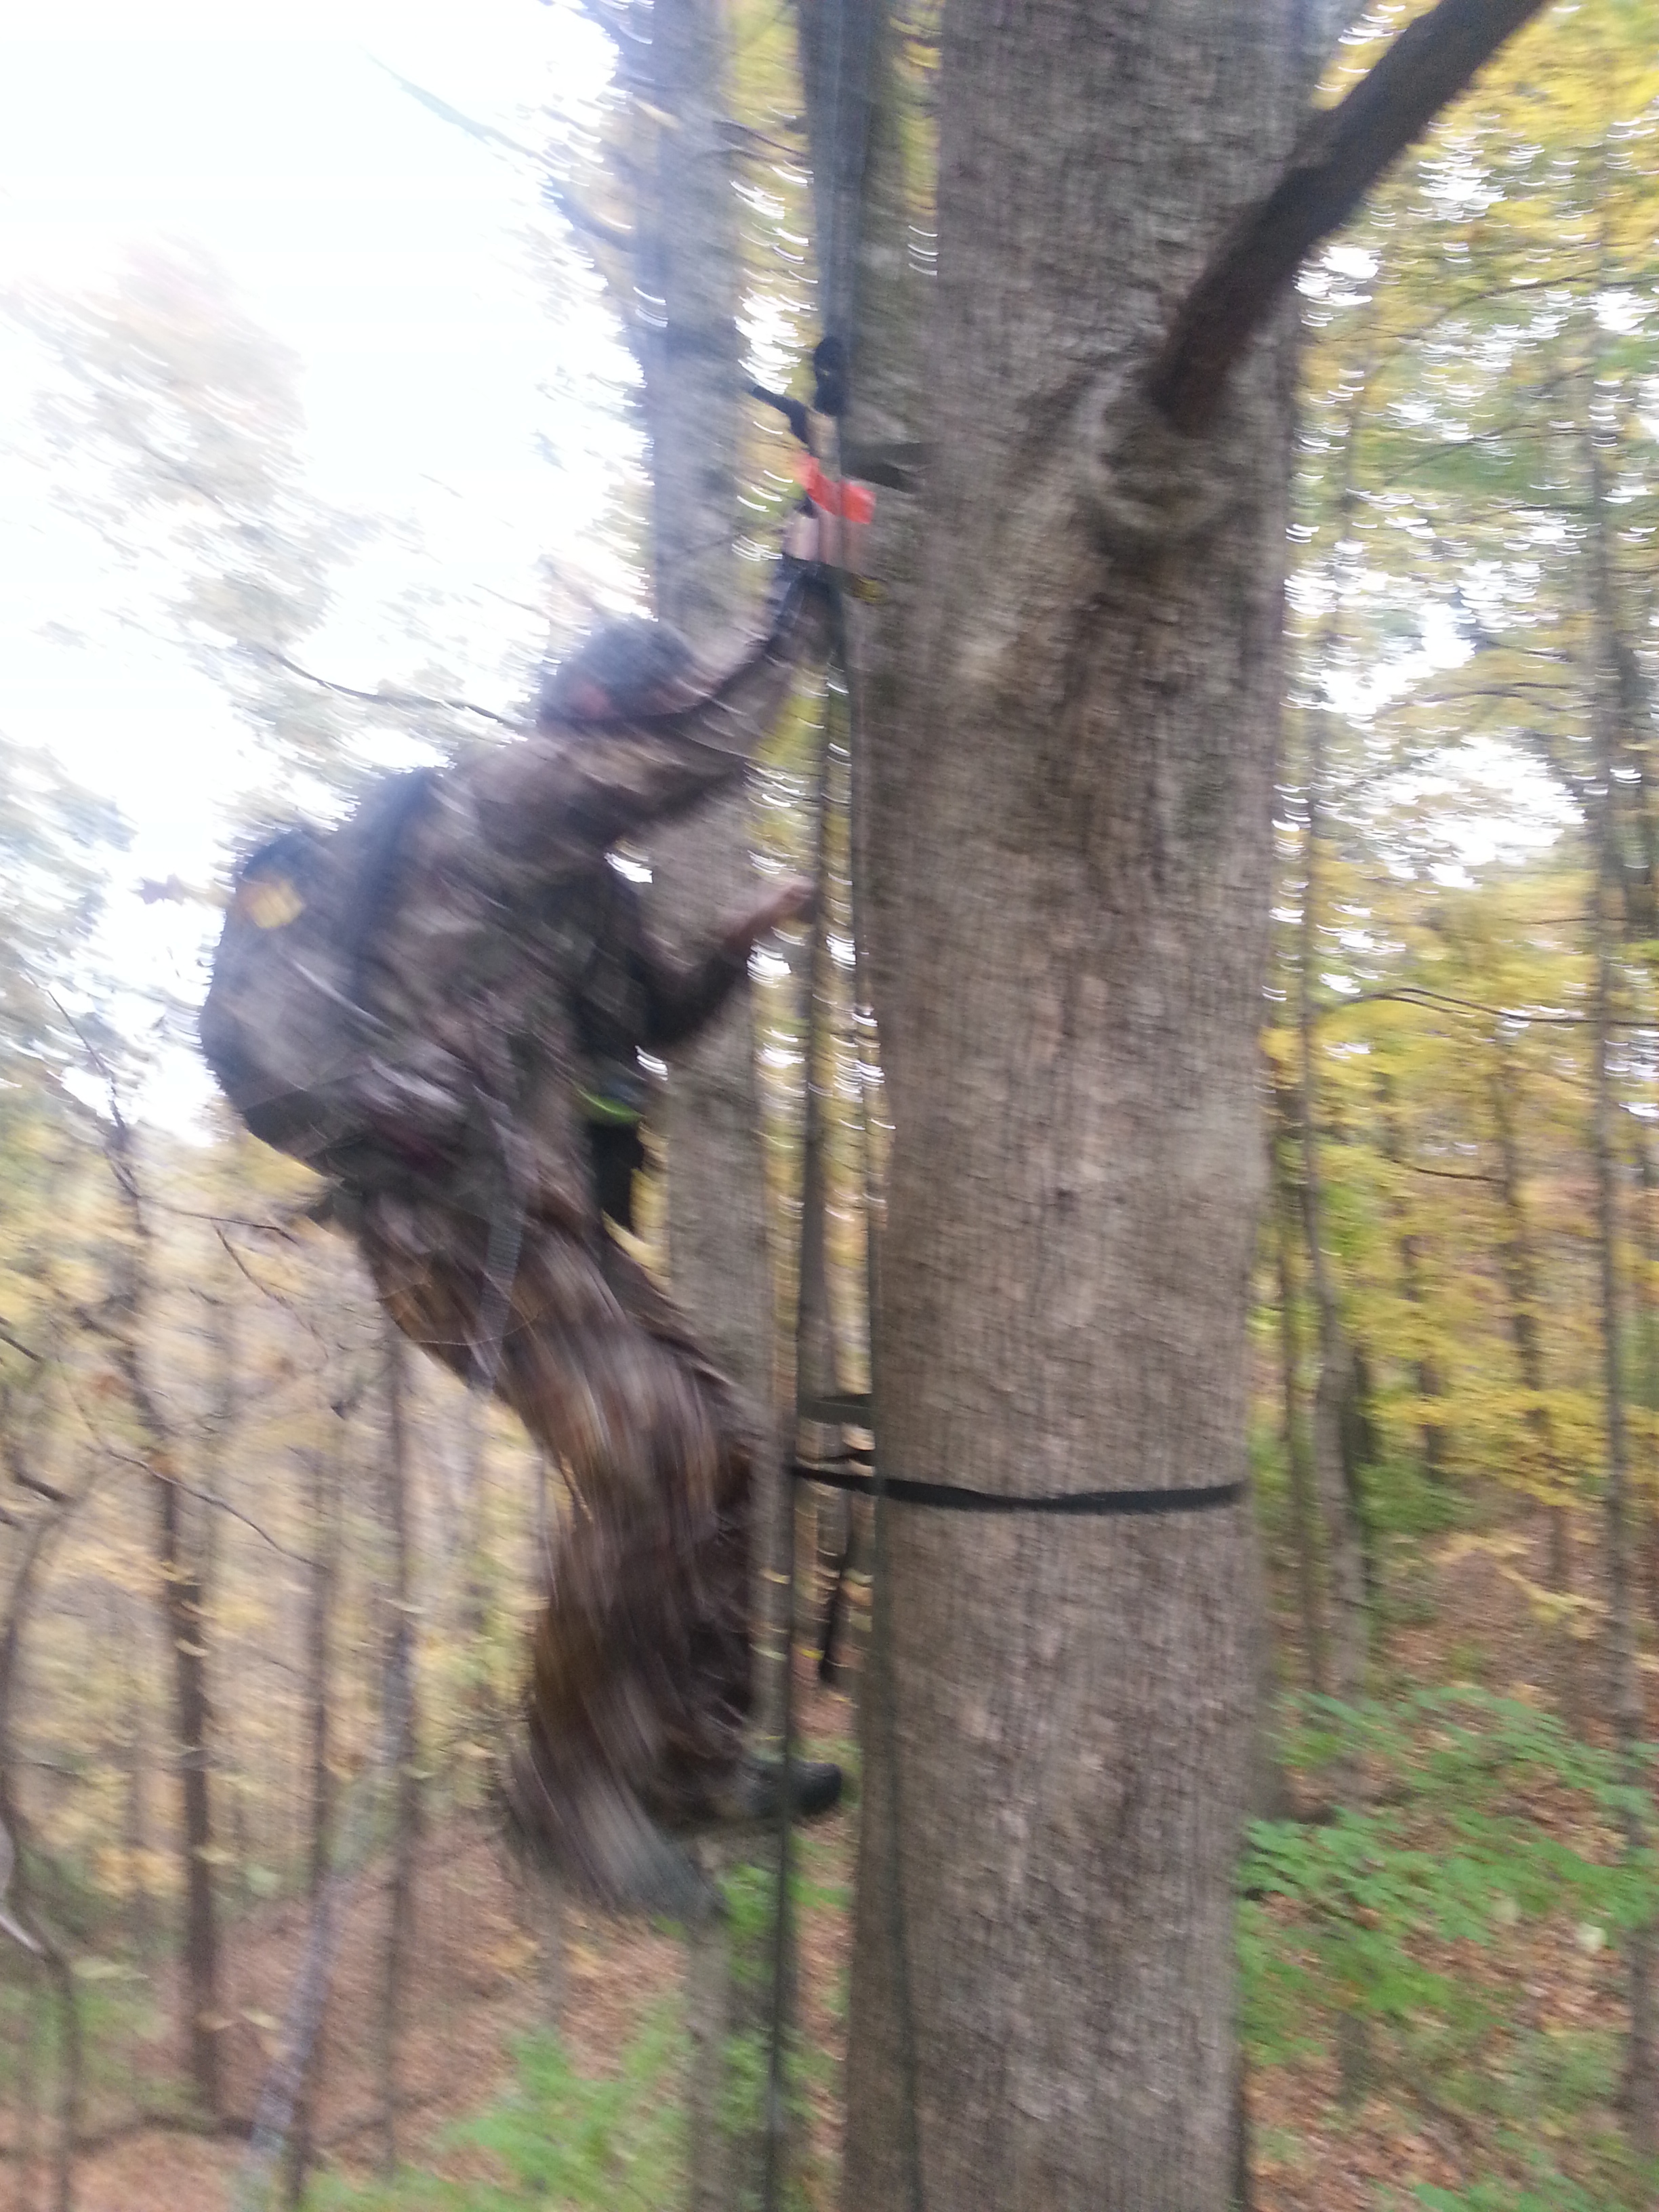 Tree Climing Safety